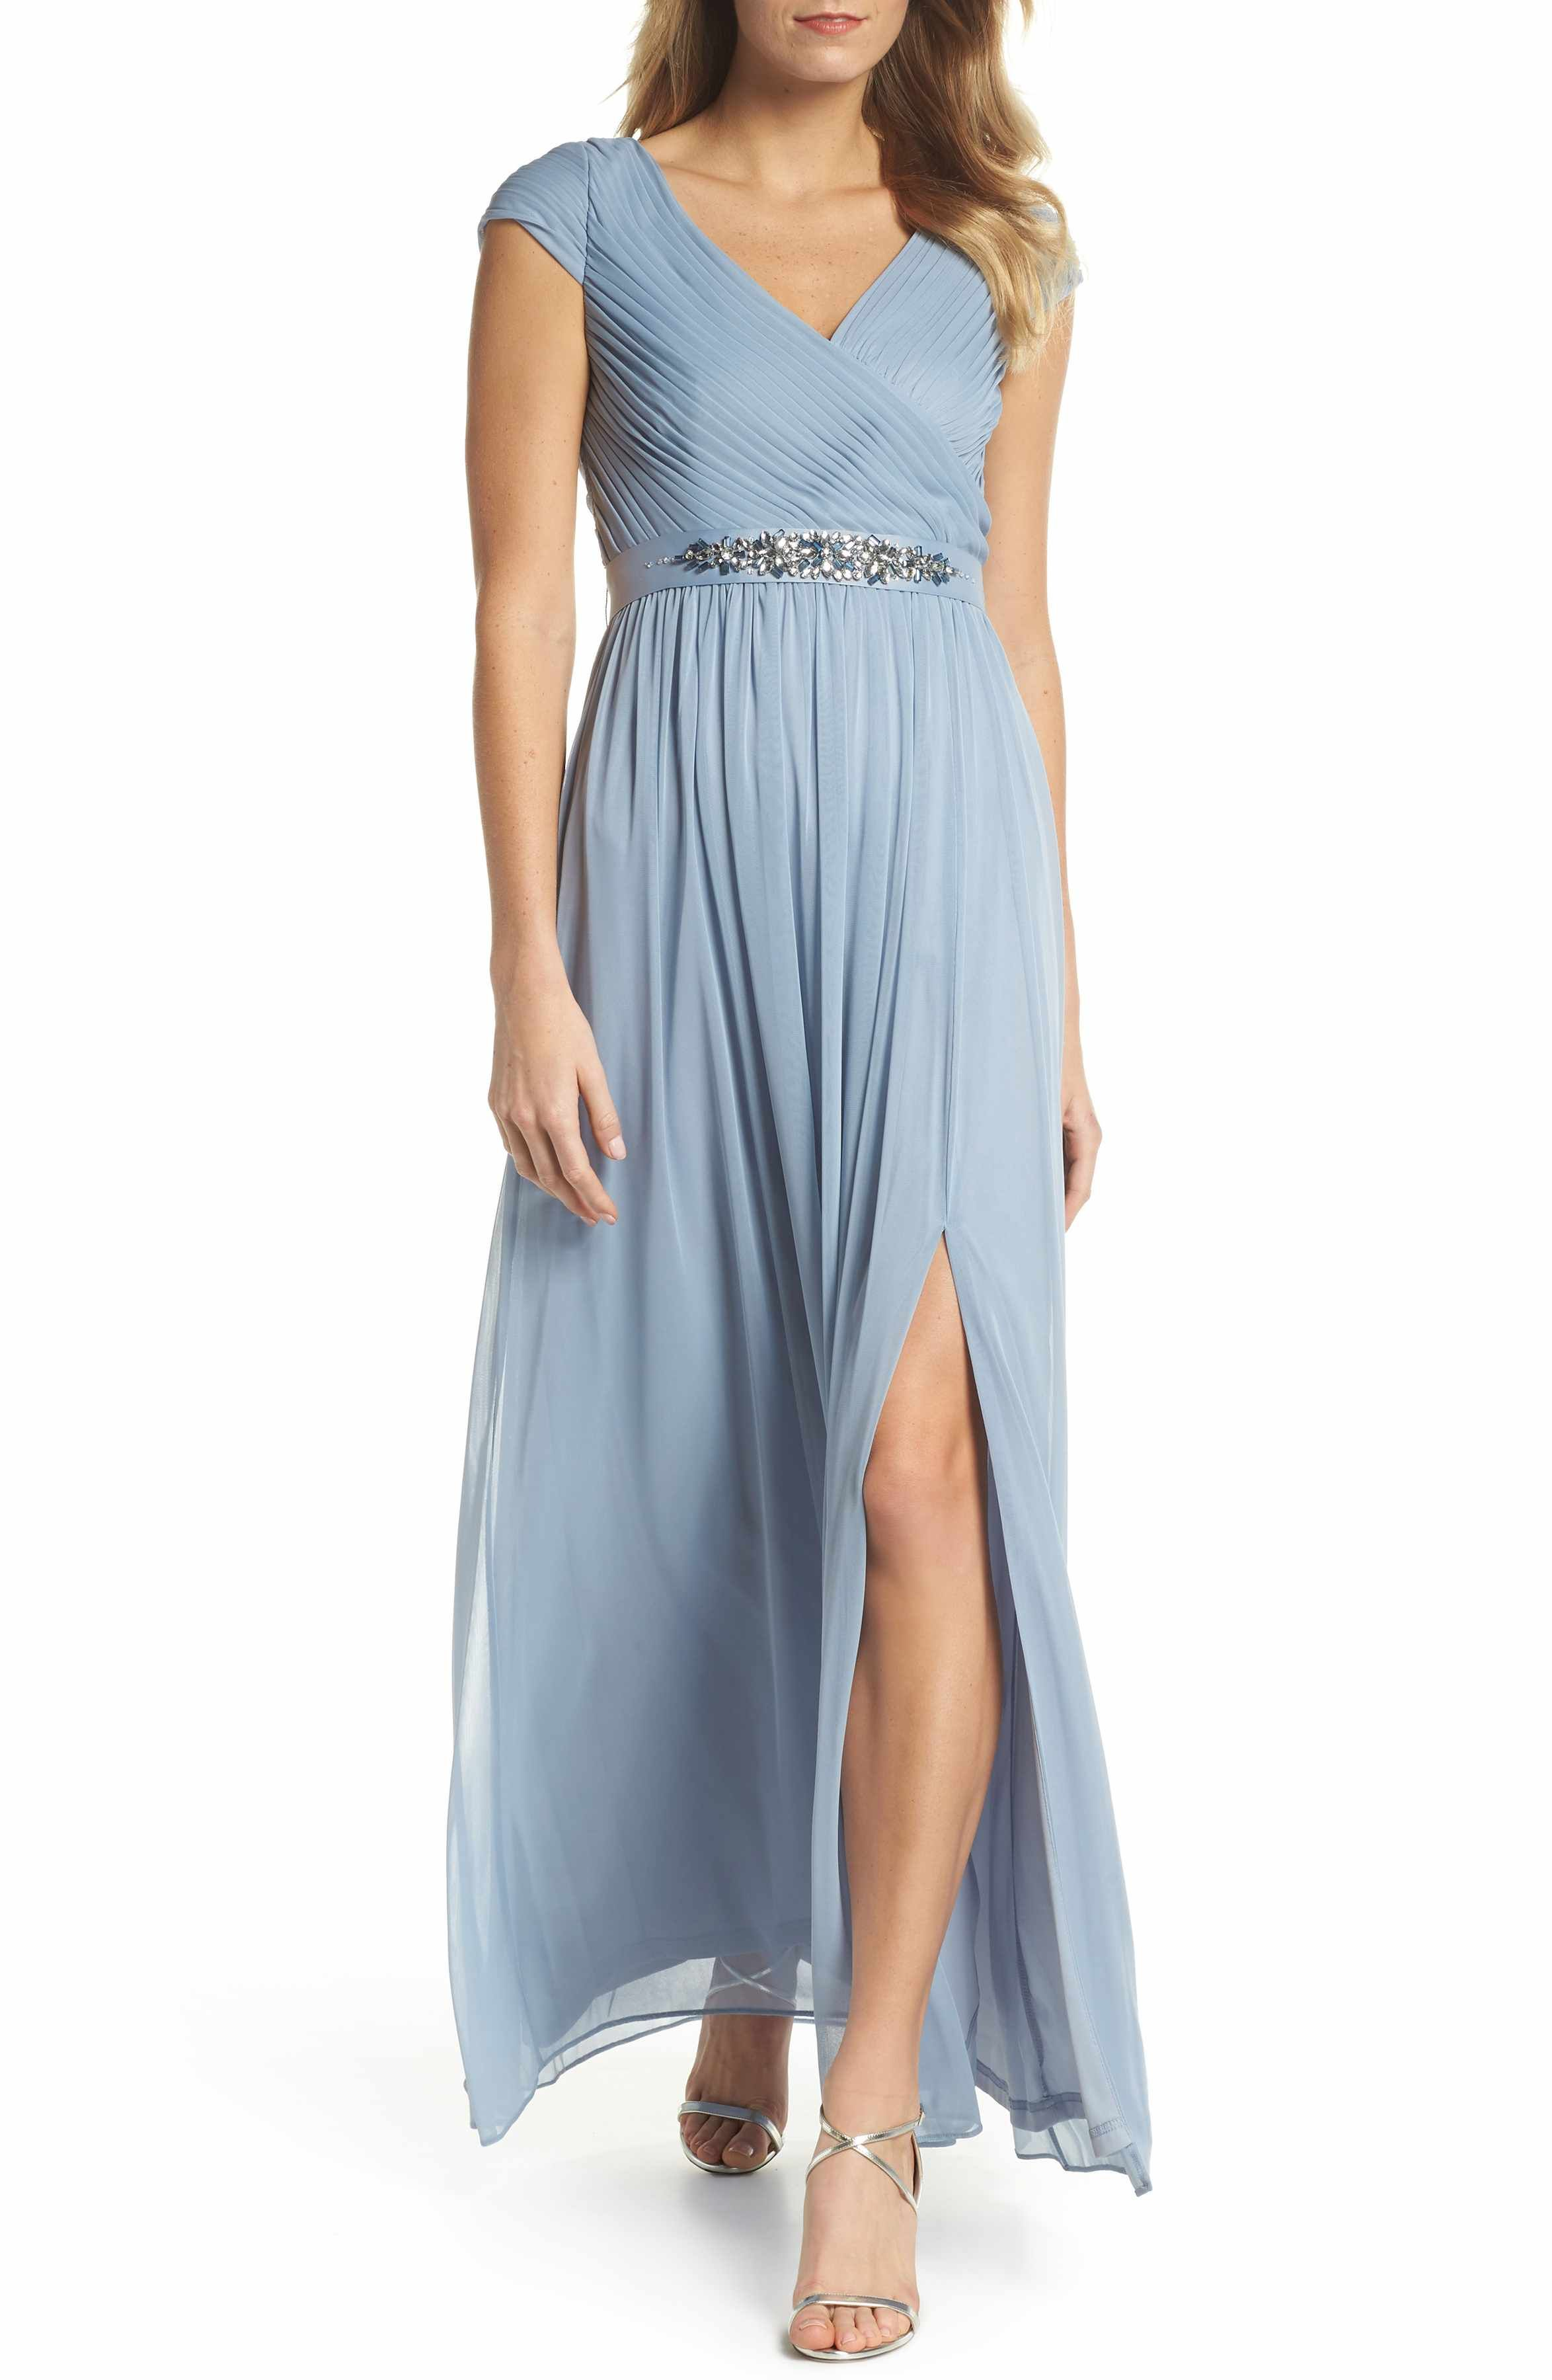 4b480007cc70 Adrianna Papell Shirred Chiffon Gown blue bridesmaid dress long bridesmaids  dresses - A pleat-textured, crossover bodice with abbreviated cap sleeves  is ...